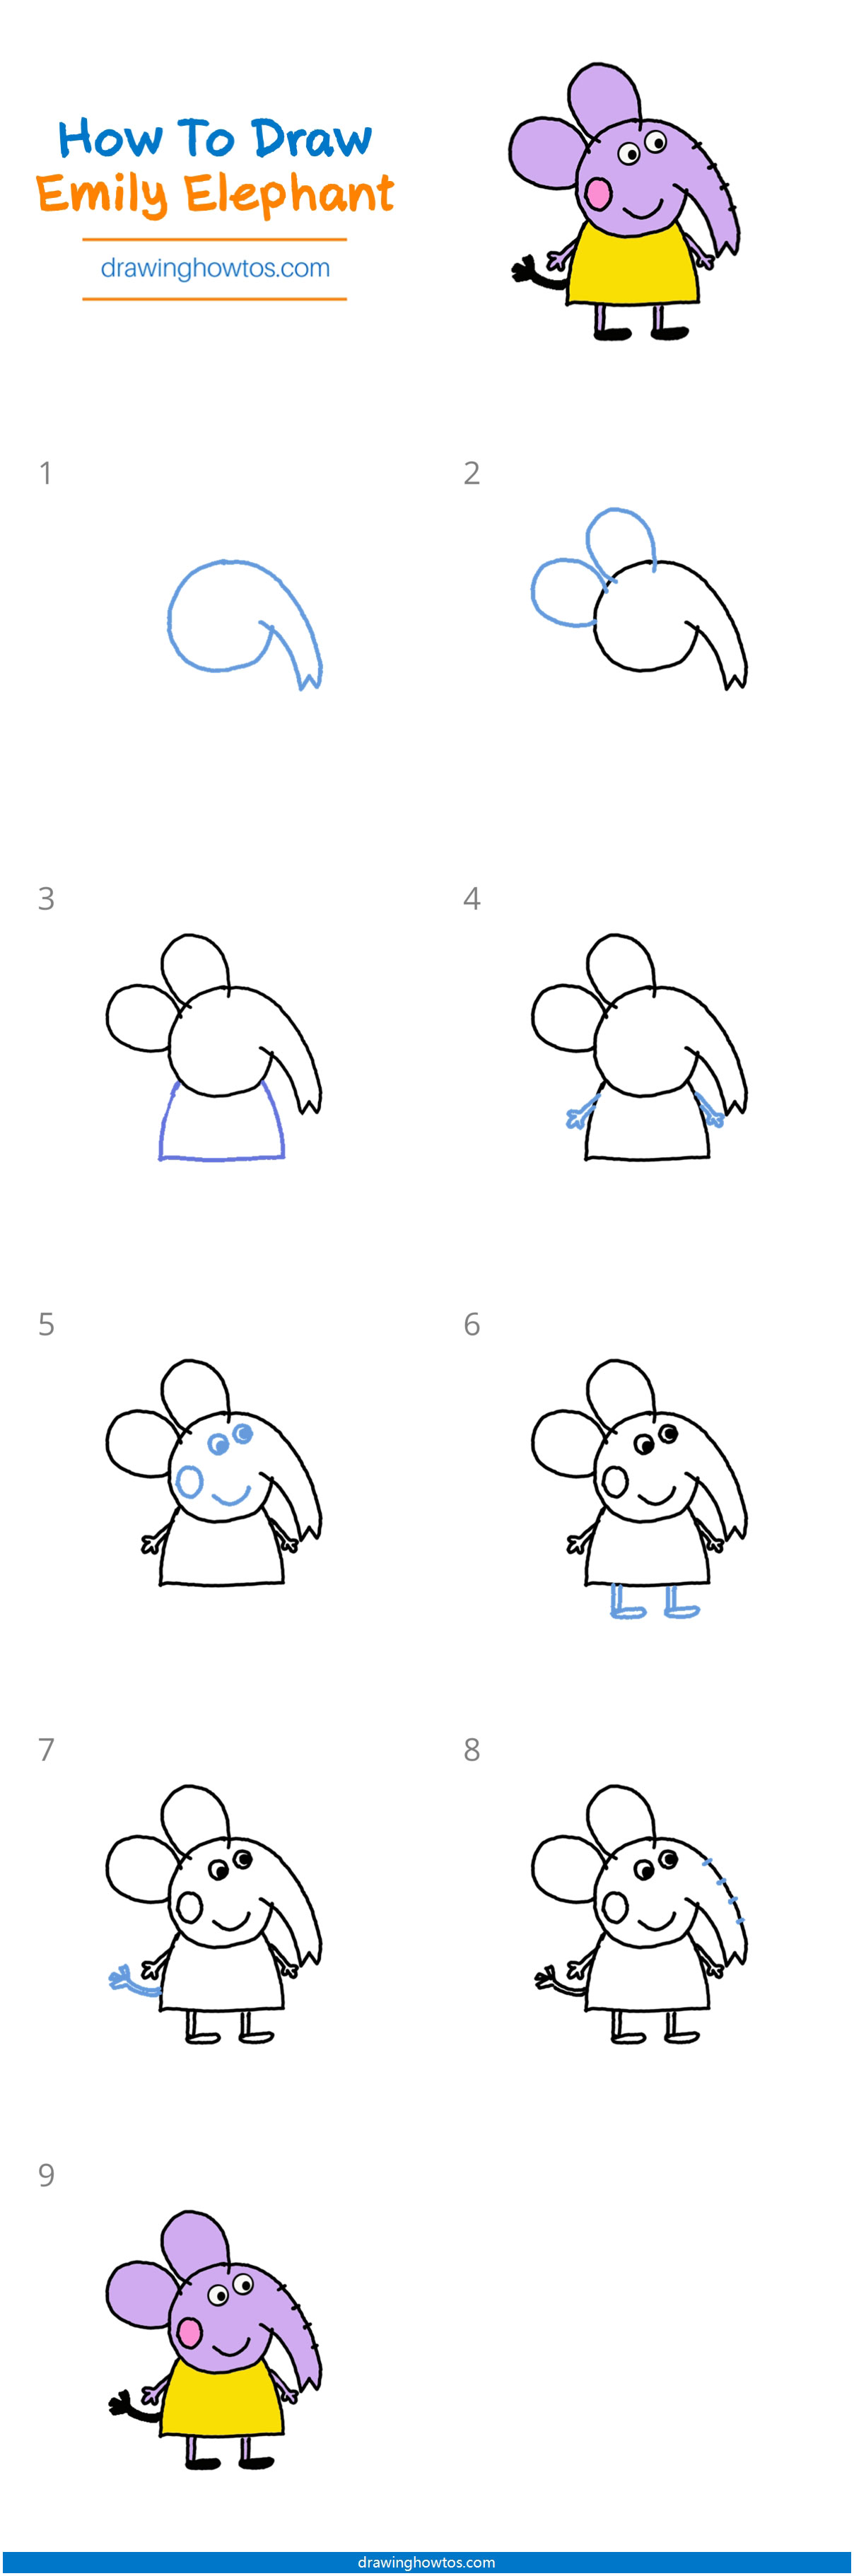 How To Draw Emily Elephant From Peppa Pig Step By Step Easy